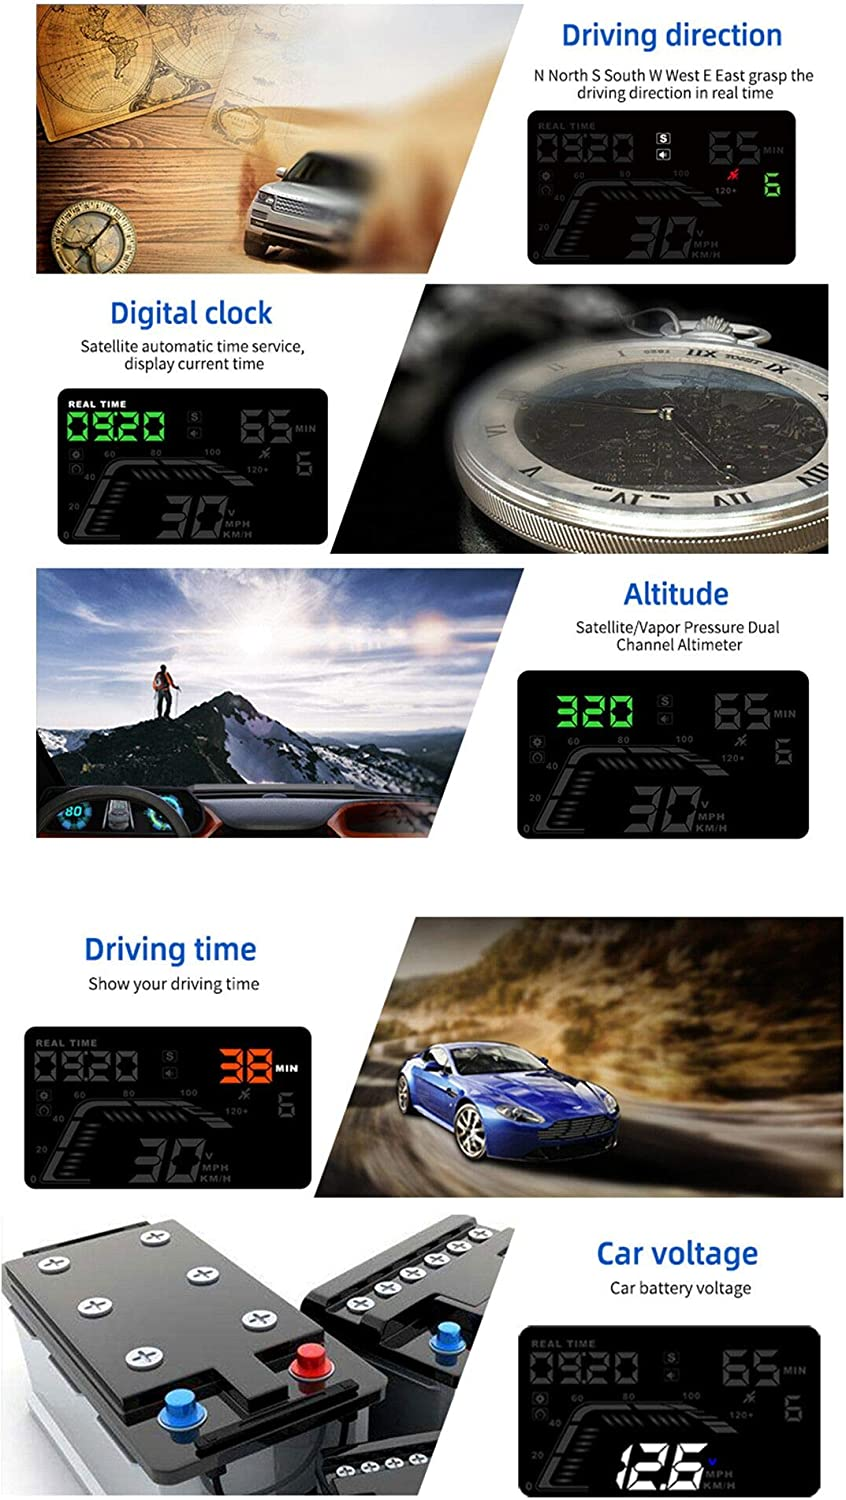 etc ECOOLBUY Upgrade Q7 Car Universal HUD 5.5 HD Screen Head Up Display OBD II//GPS Dual System Support OverSpeed Warning Timer Compass Engine RPM,Mileage